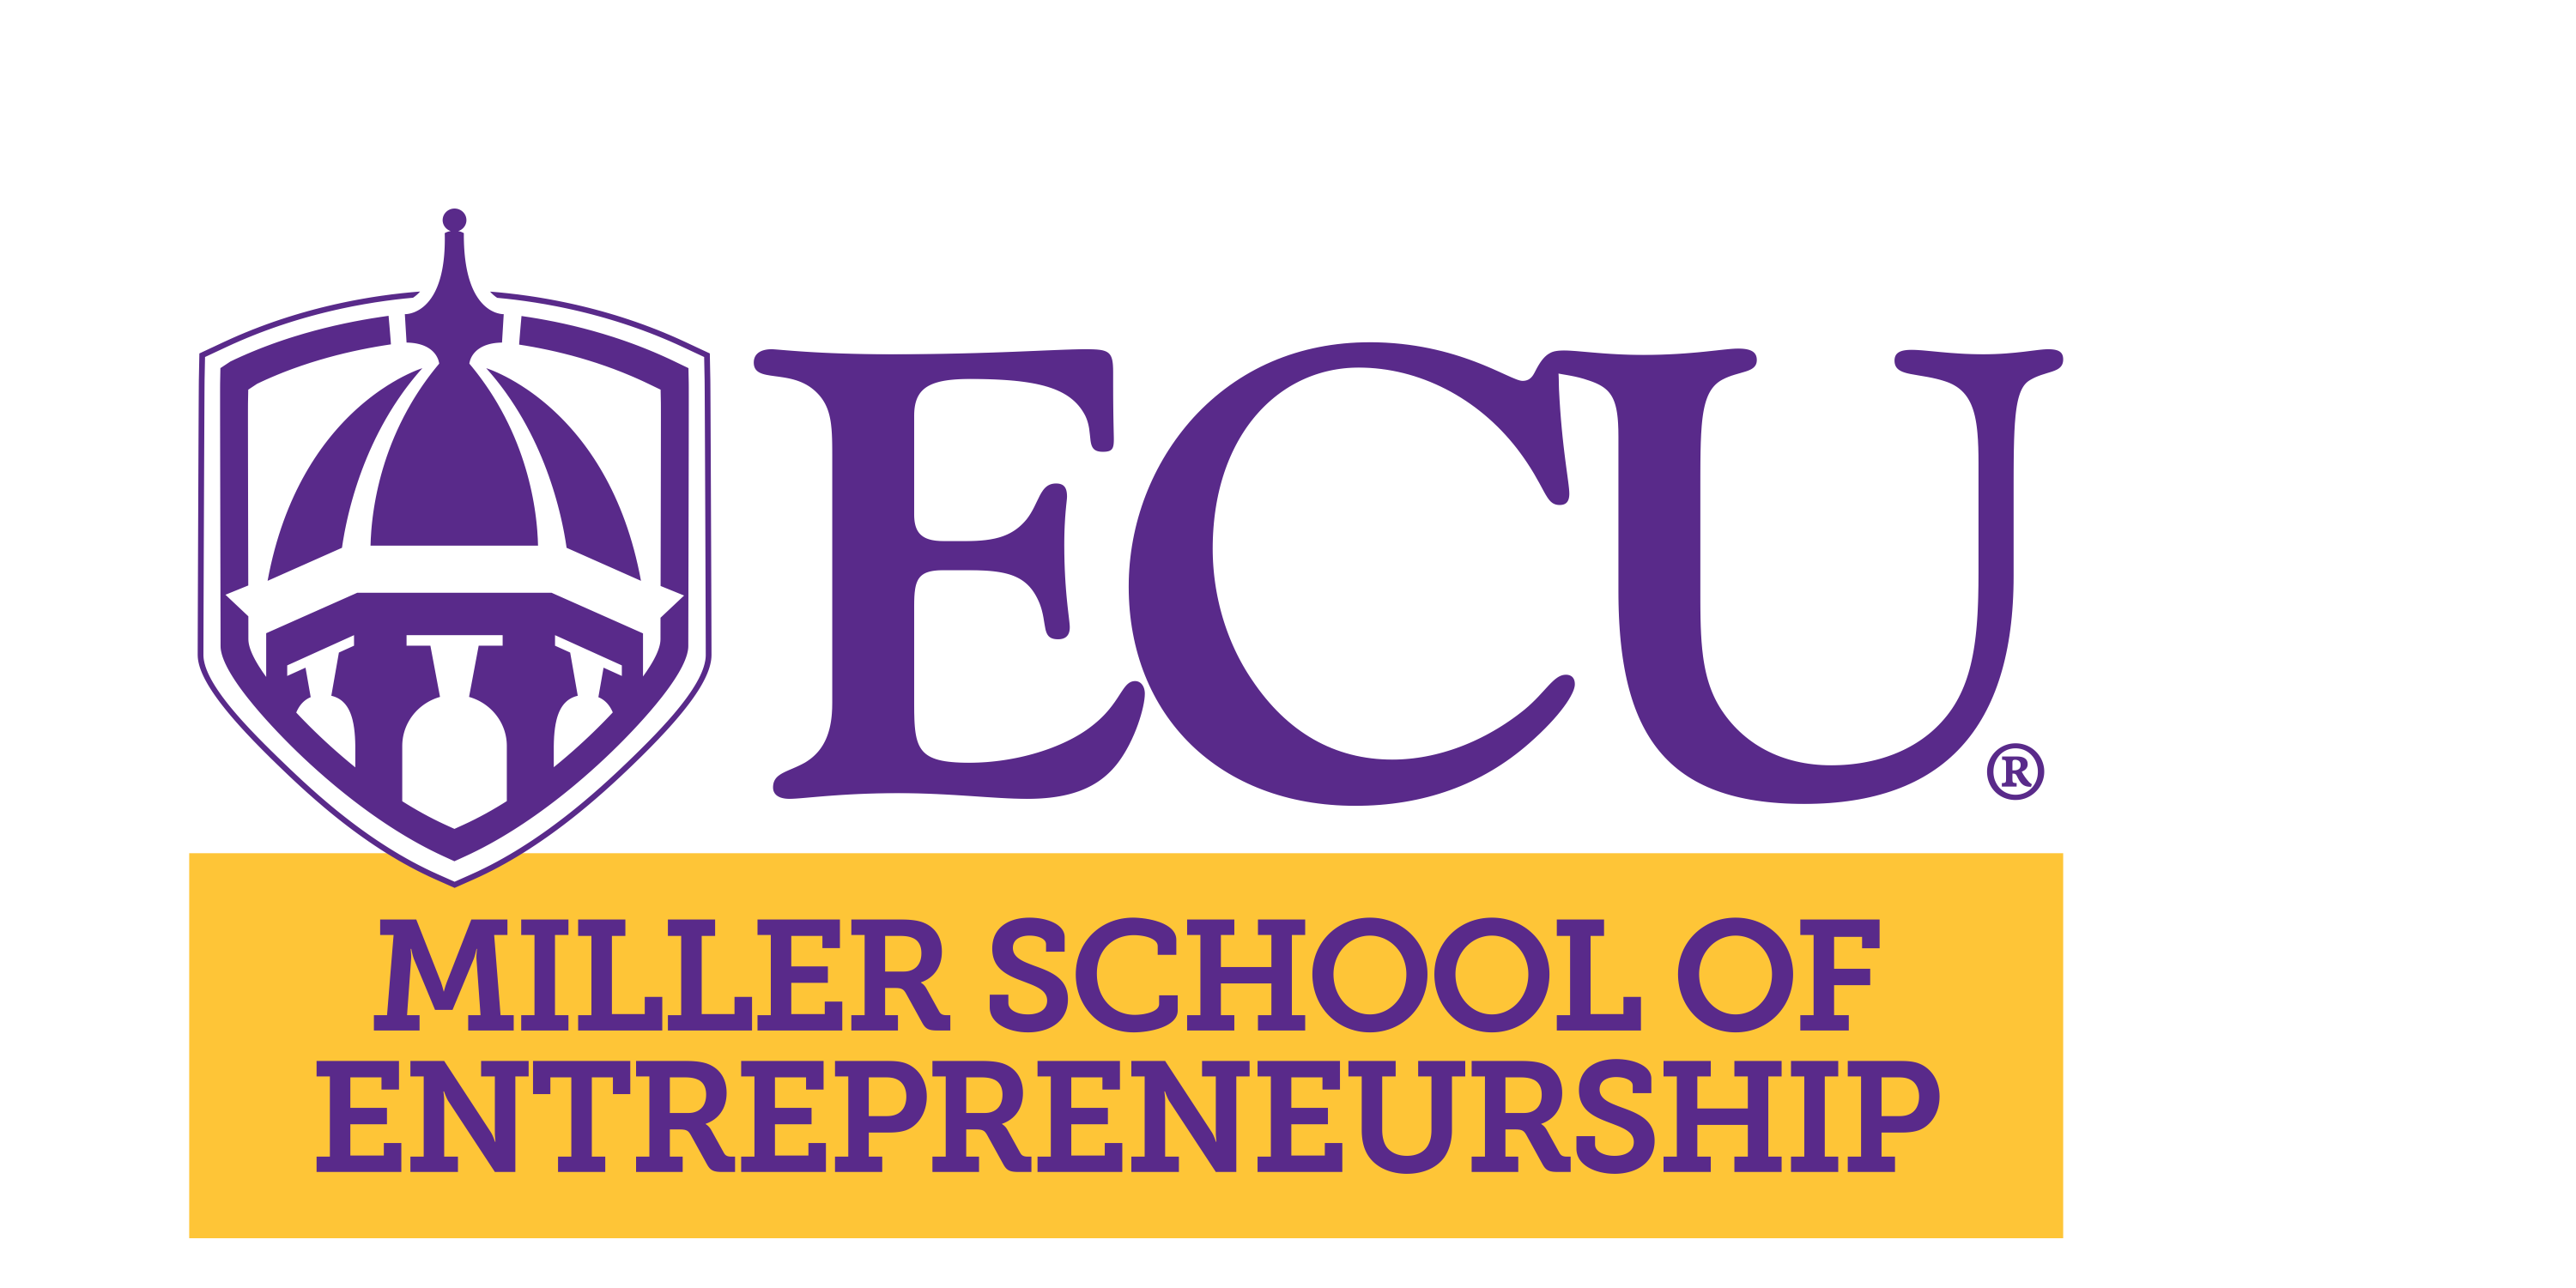 LaunchGoldsboro Partner ECU Miller School of Entreprenurship